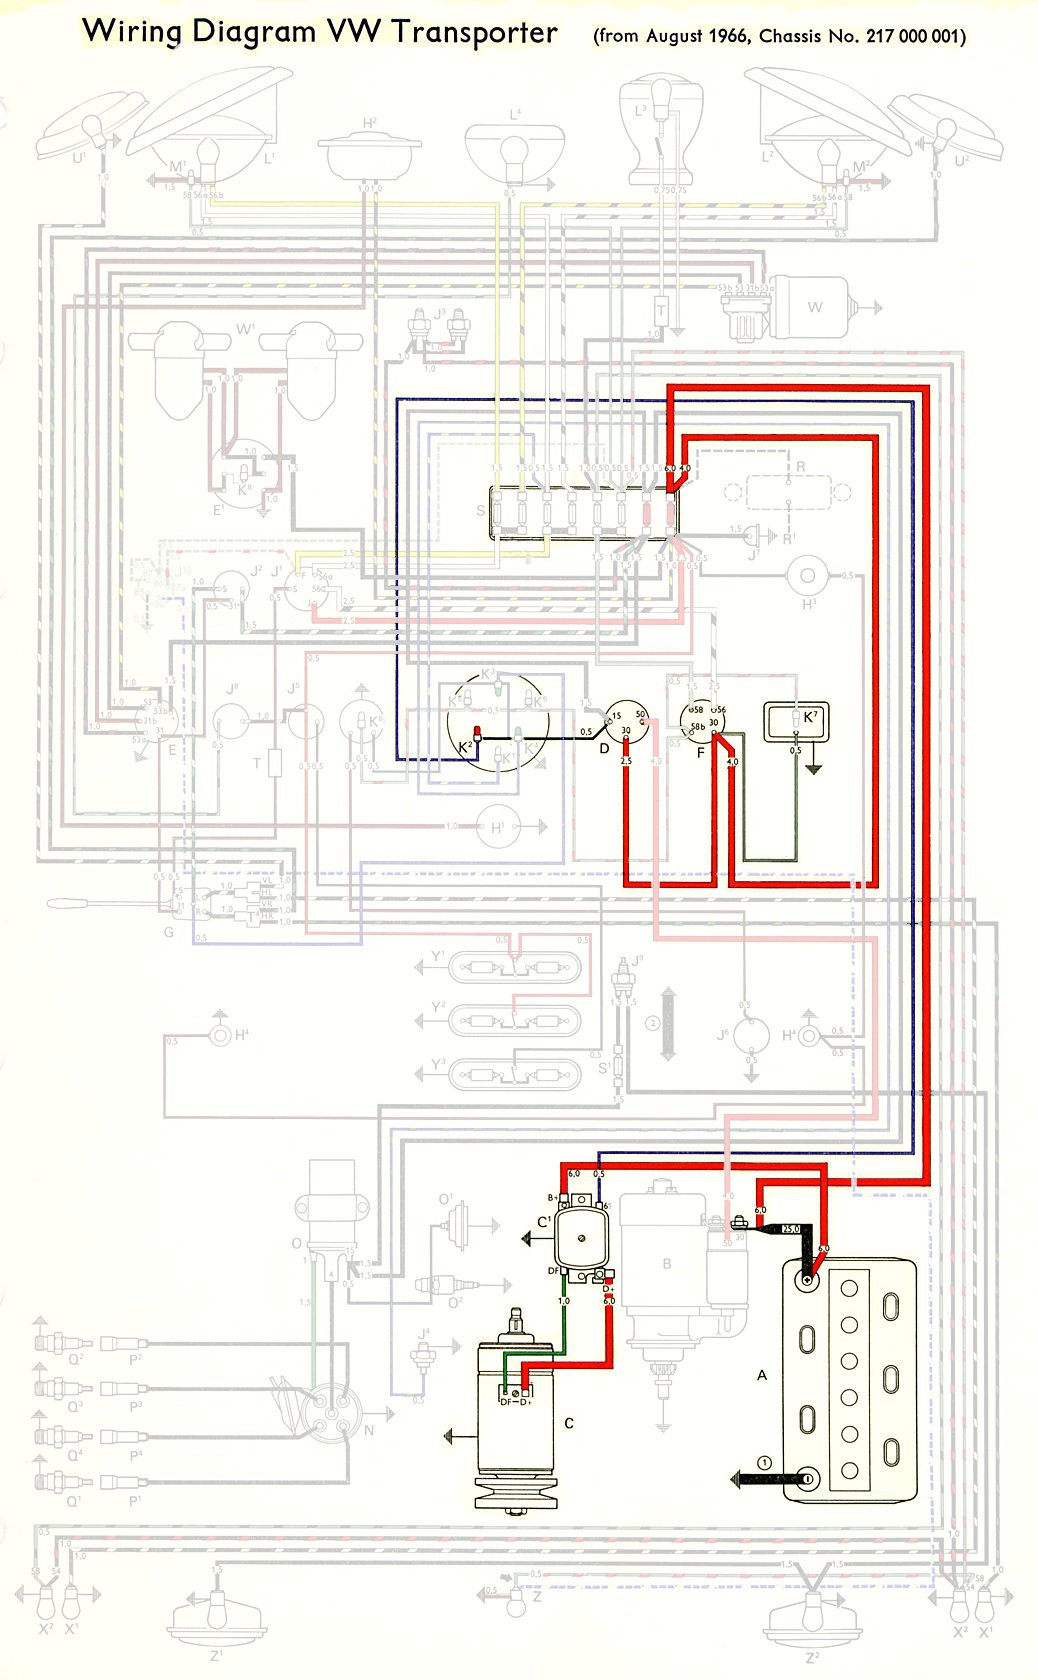 1967Bus_Eur_UnfusedSchematic ambulance wiring diagram elevator schematic diagram wiring diagram horton 4160 wiring diagram at reclaimingppi.co